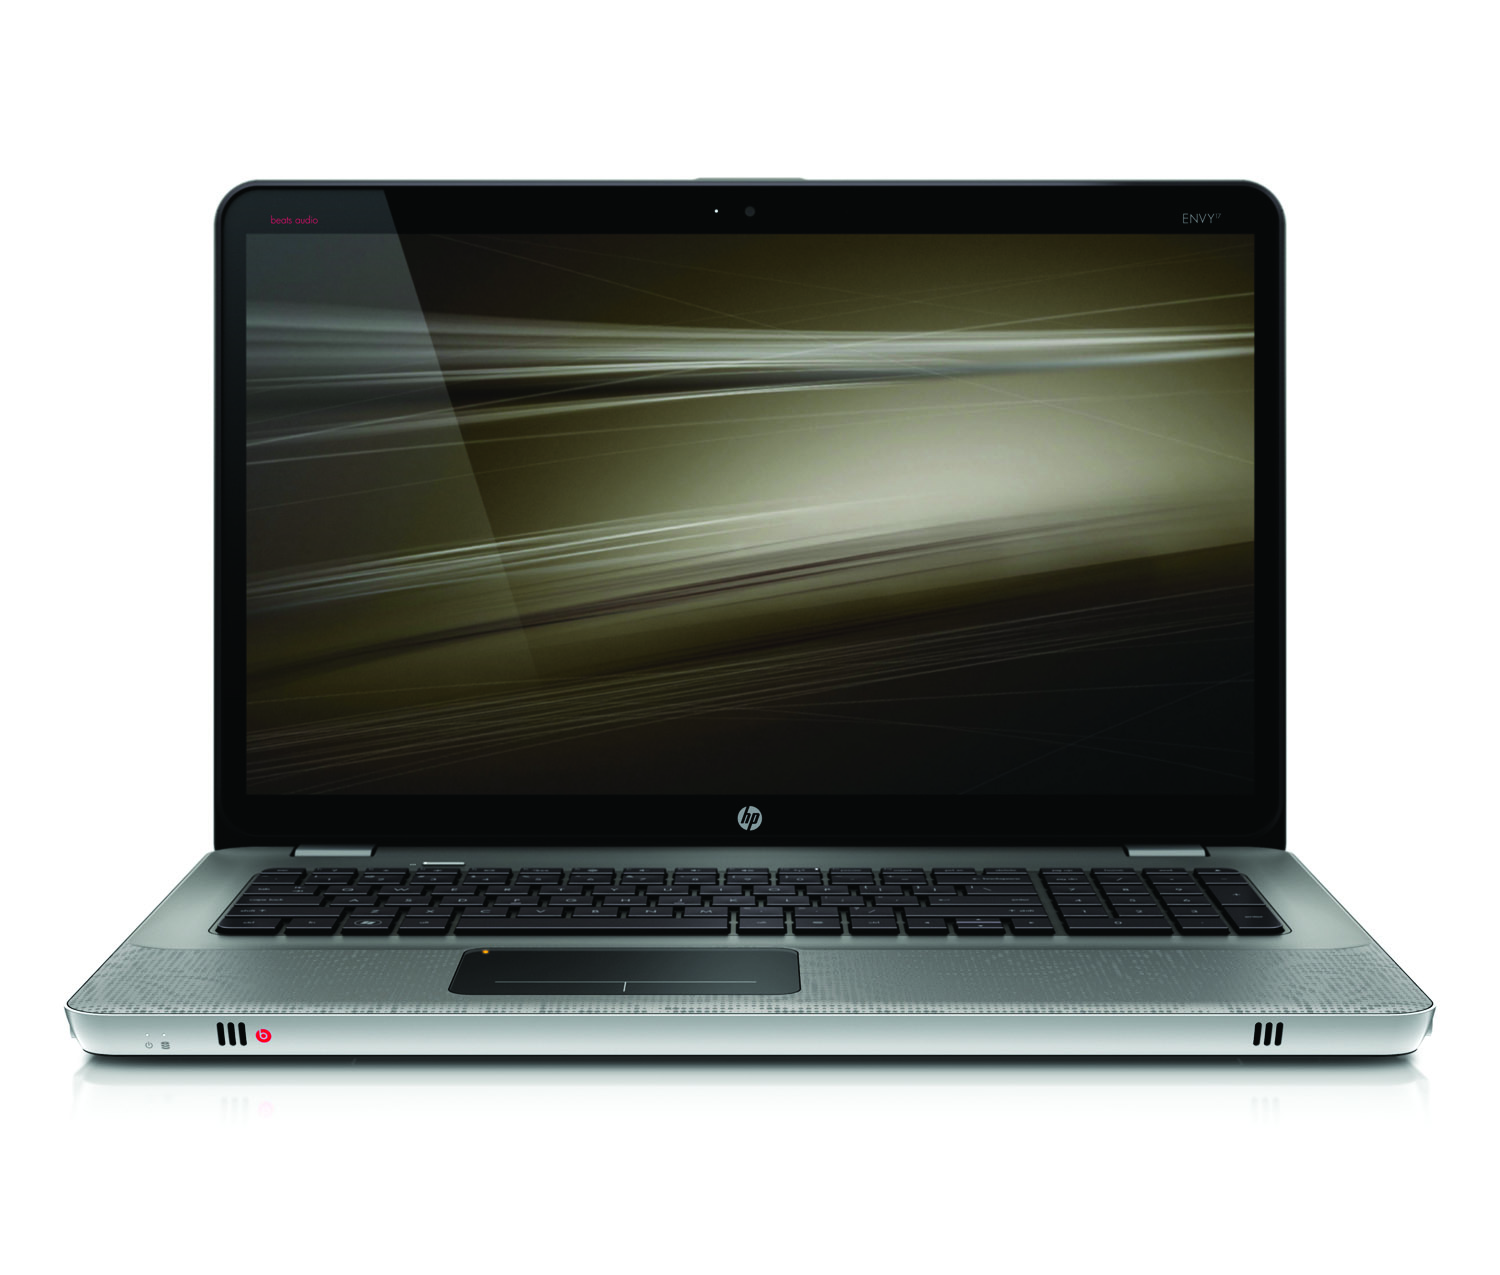 HP Envy 17, front open on white